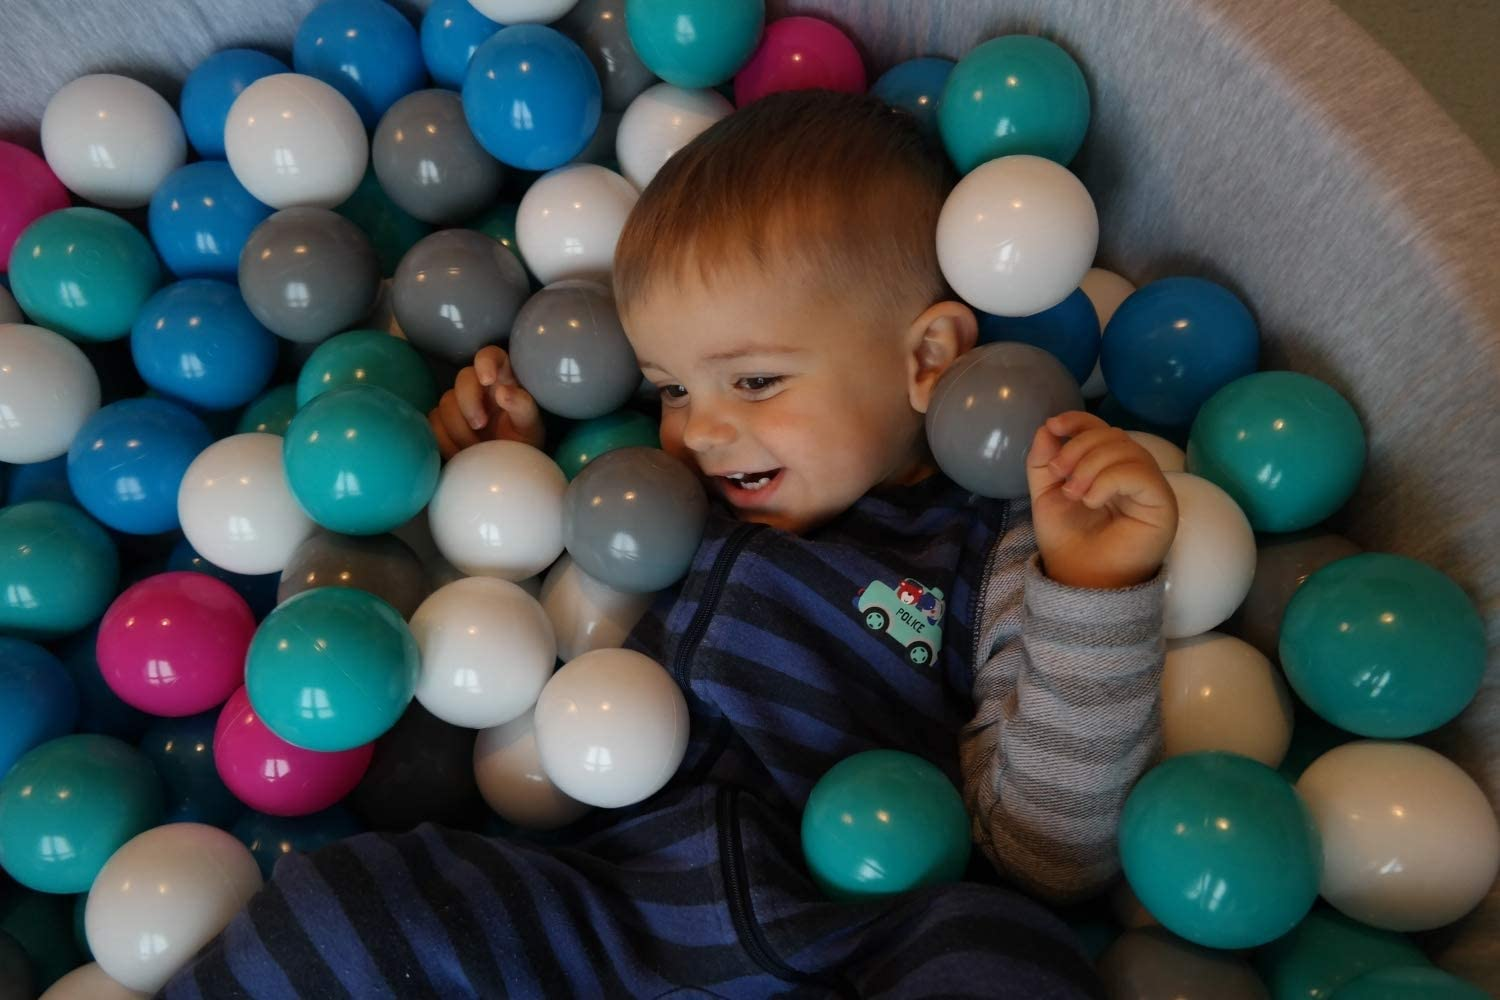 Velinda Soft Jersey Baby Kids Children Ball Pit with 150 balls, Gift (Balls colours: white,light pink,grey) Pearl, Silver, Light Blue